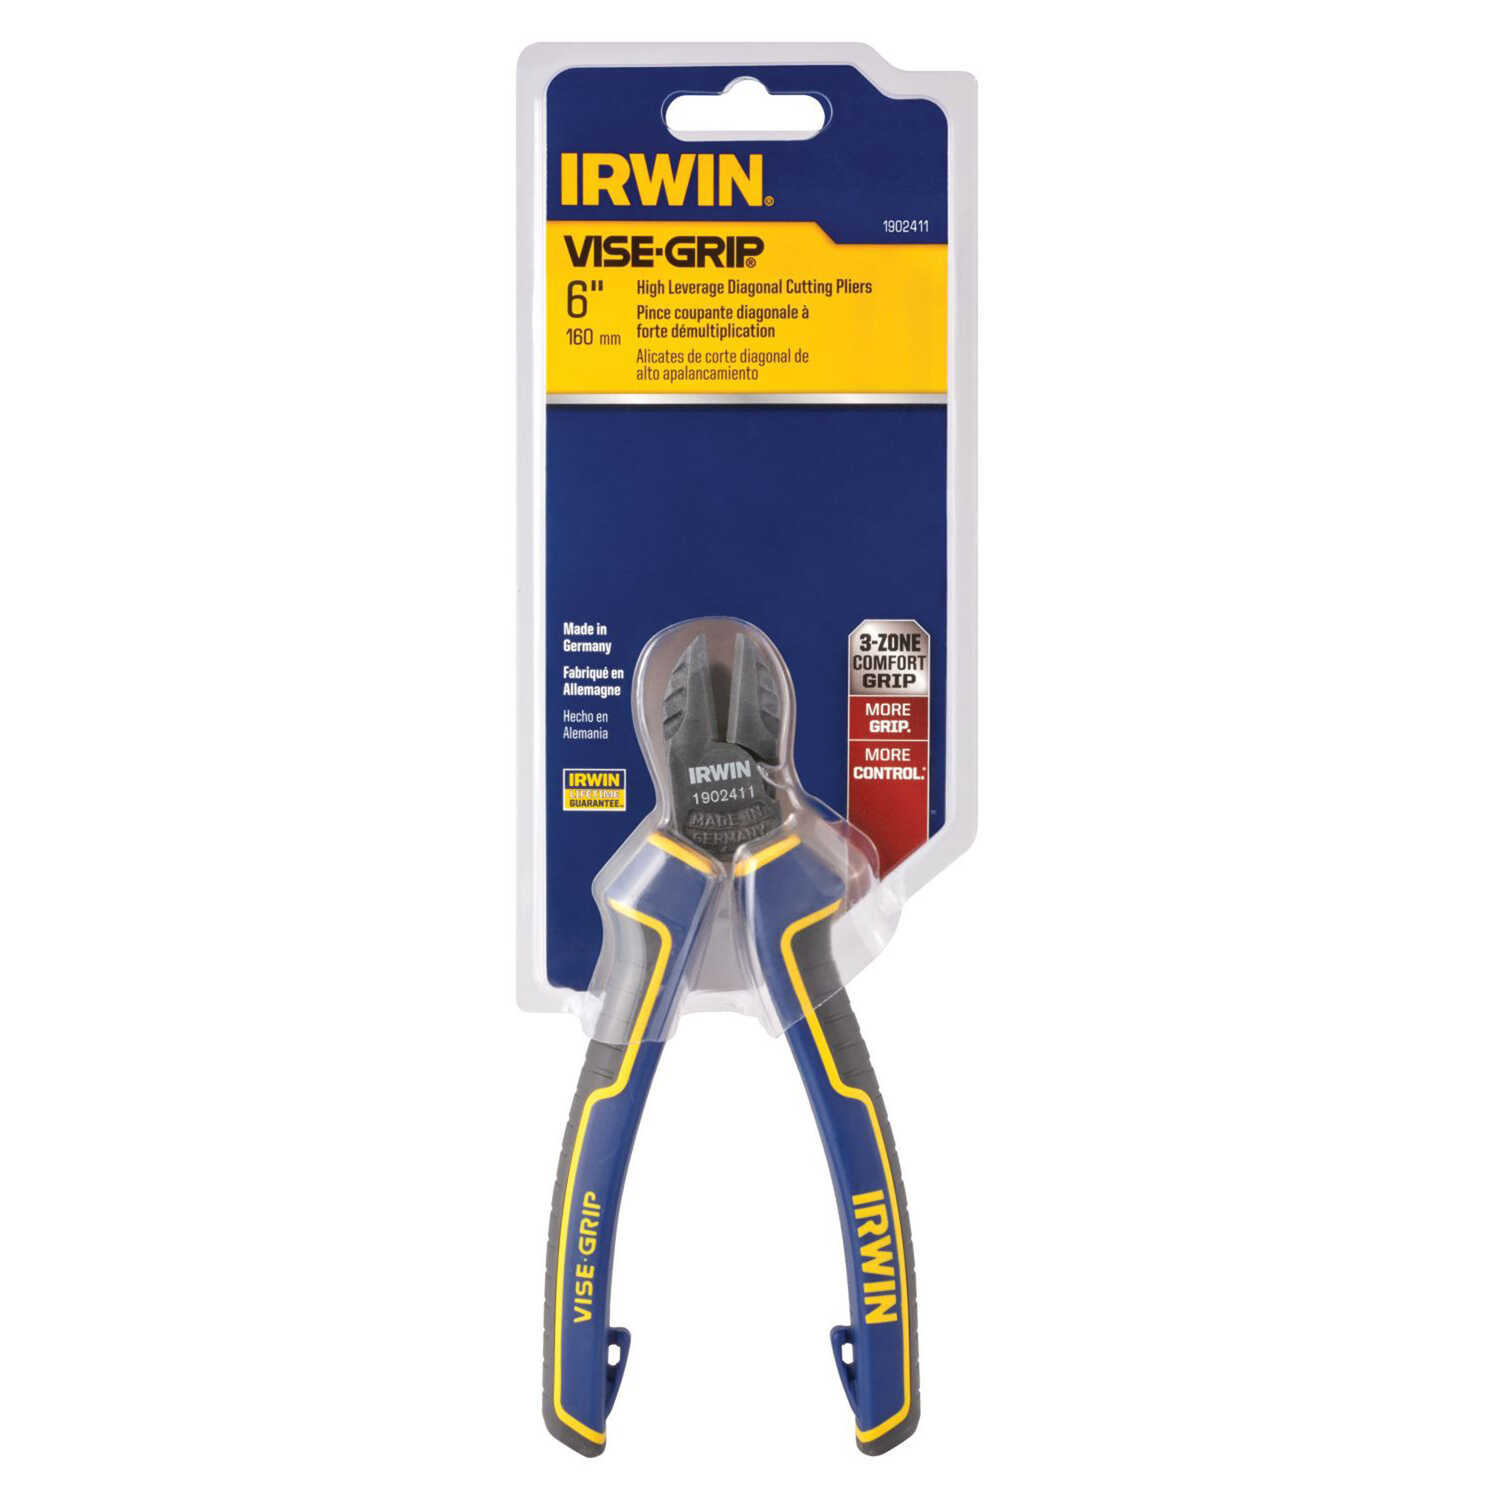 Irwin  Vise-Grip  6 in. Alloy Steel  Leverage Diagonal  Diagonal Pliers  Blue/Yellow  1 pk